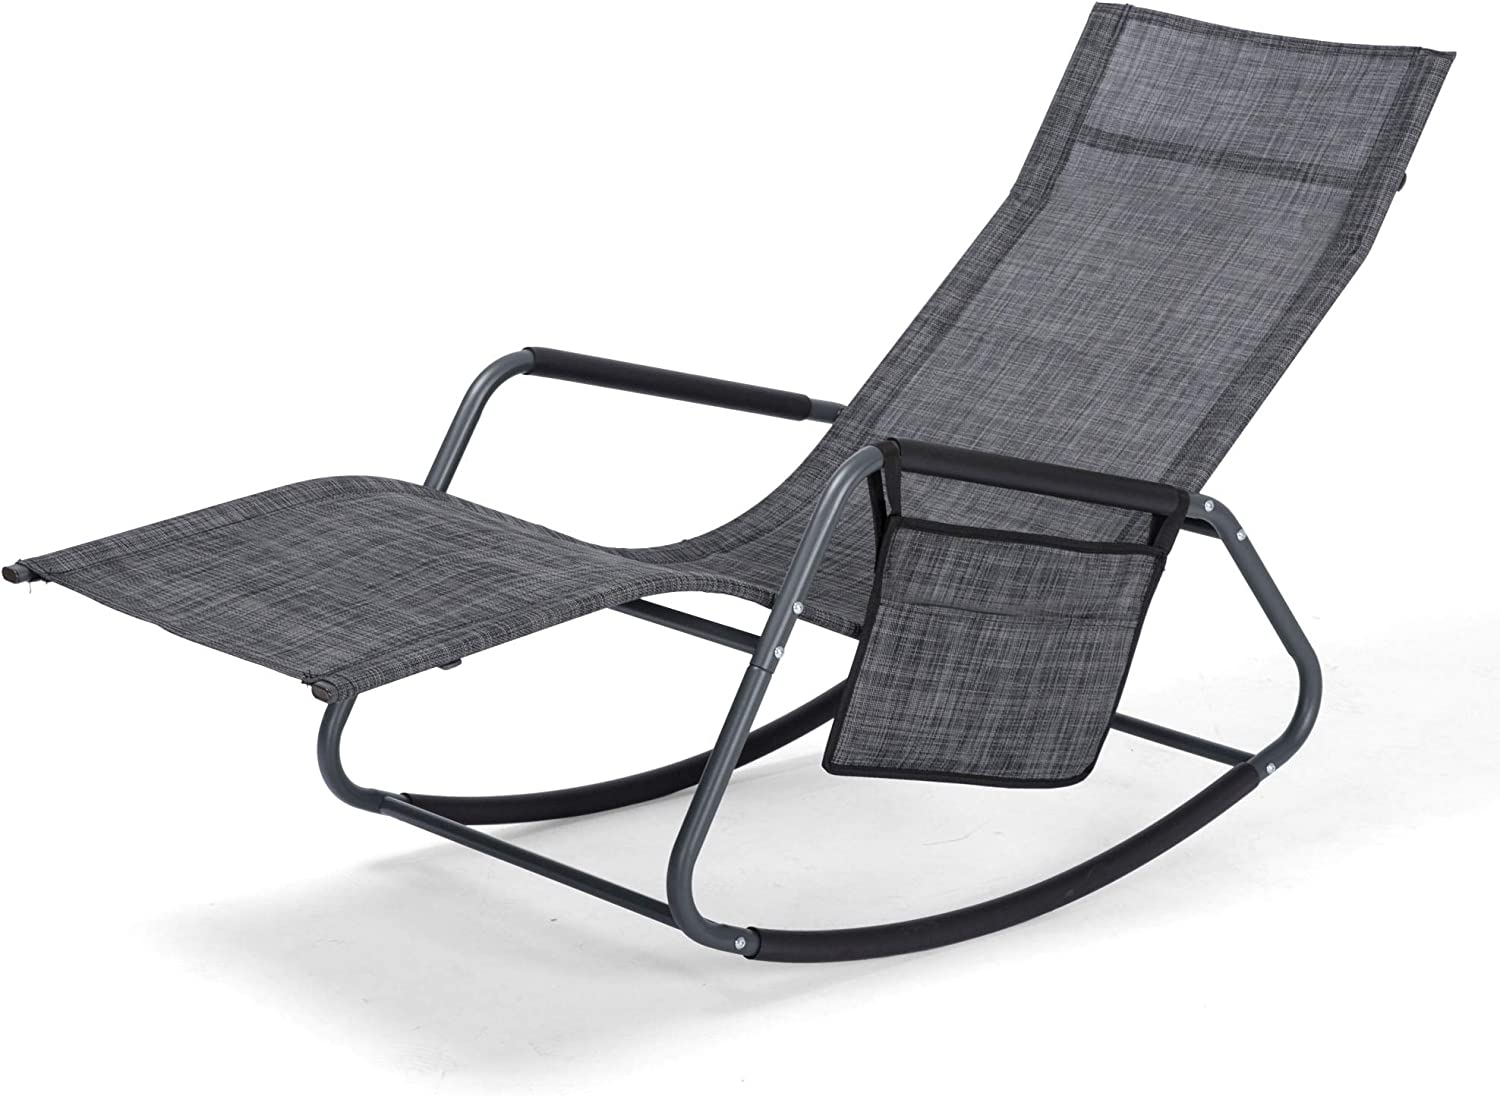 Chaise Lounge Chair Recliner with Portable Storage Bag,265lbs Capacity,Textiline Chaise Reclining Lounge Chairs for Outdoor,Pool,Patio,Lawn(Dark Gray